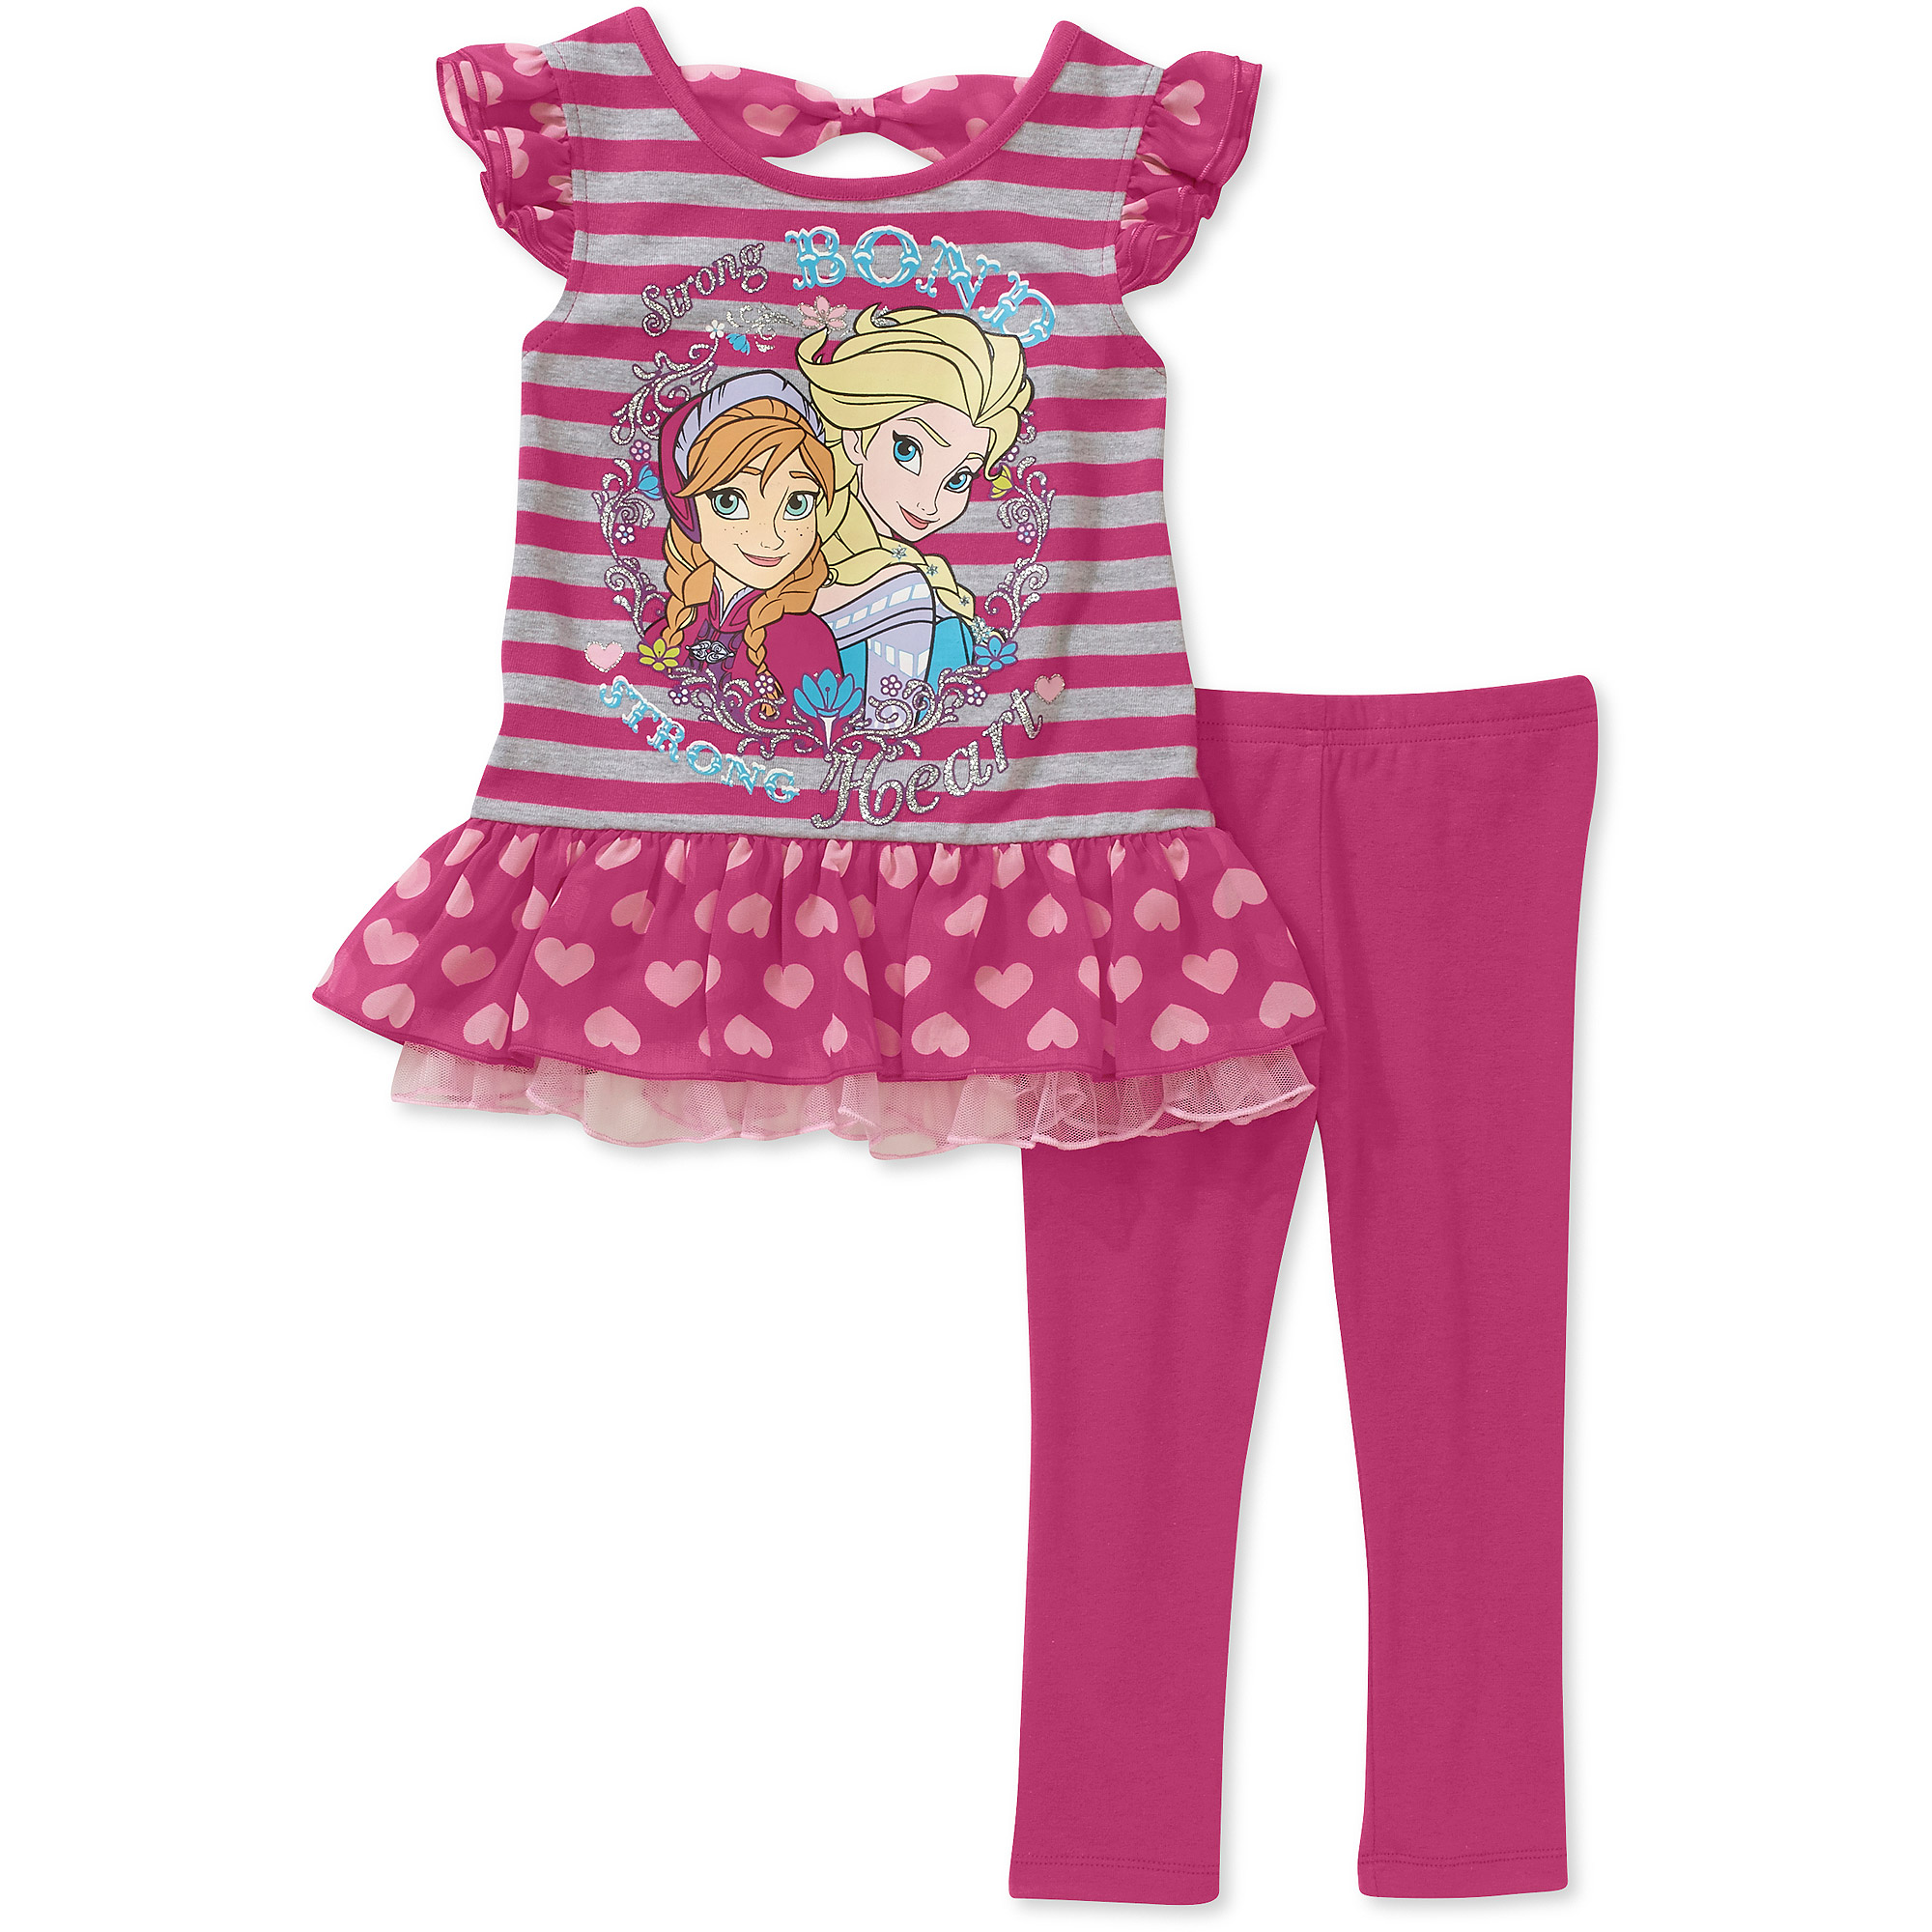 Disney Frozen Toddler Girl Ruffle Tunic and Legging 2 Piece Set